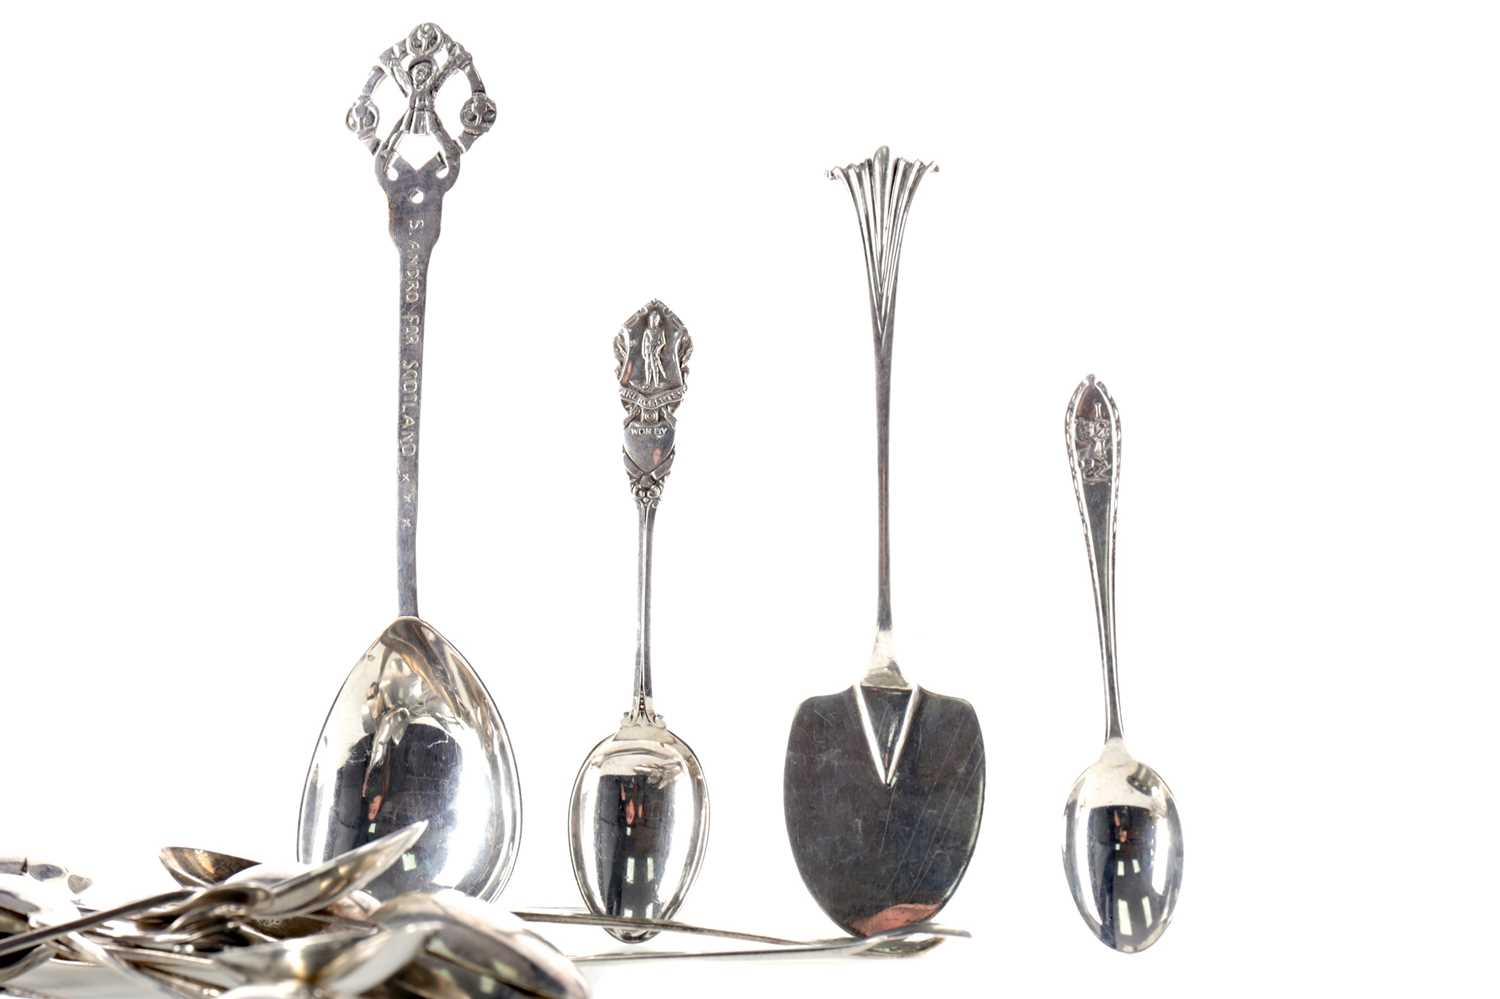 Lot 480 - A COLLECTION OF SILVER SPOONS